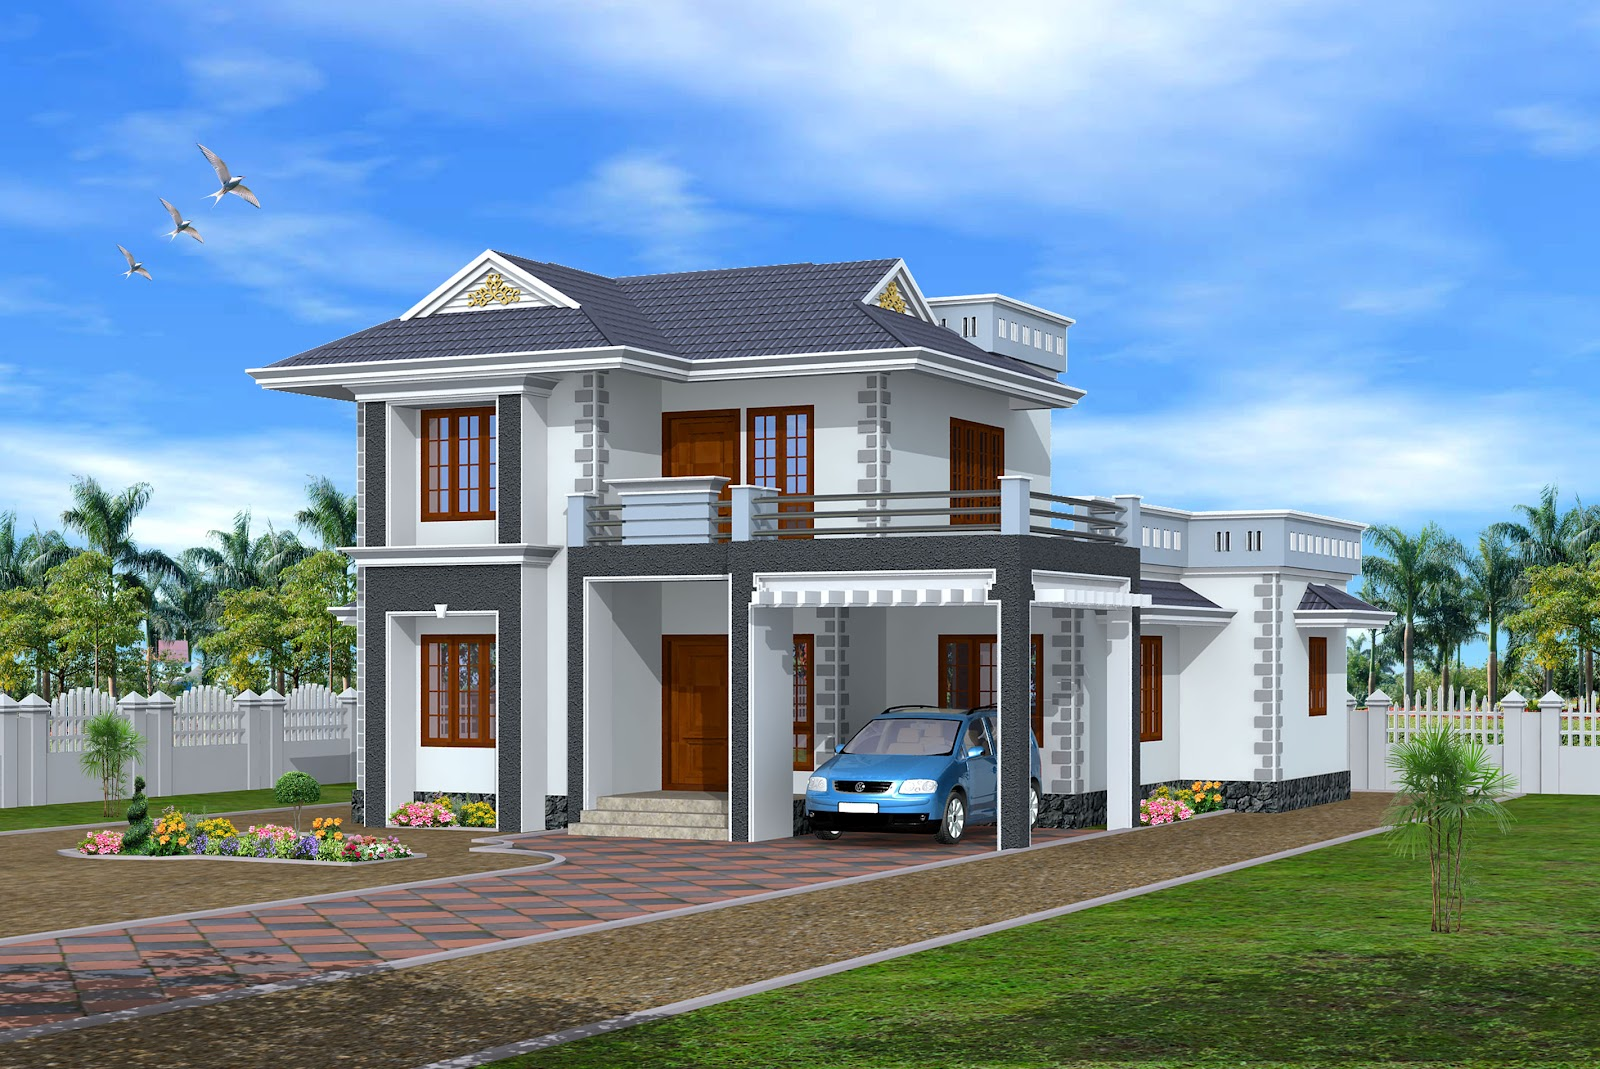 New home designs latest modern homes exterior designs views for Latest home